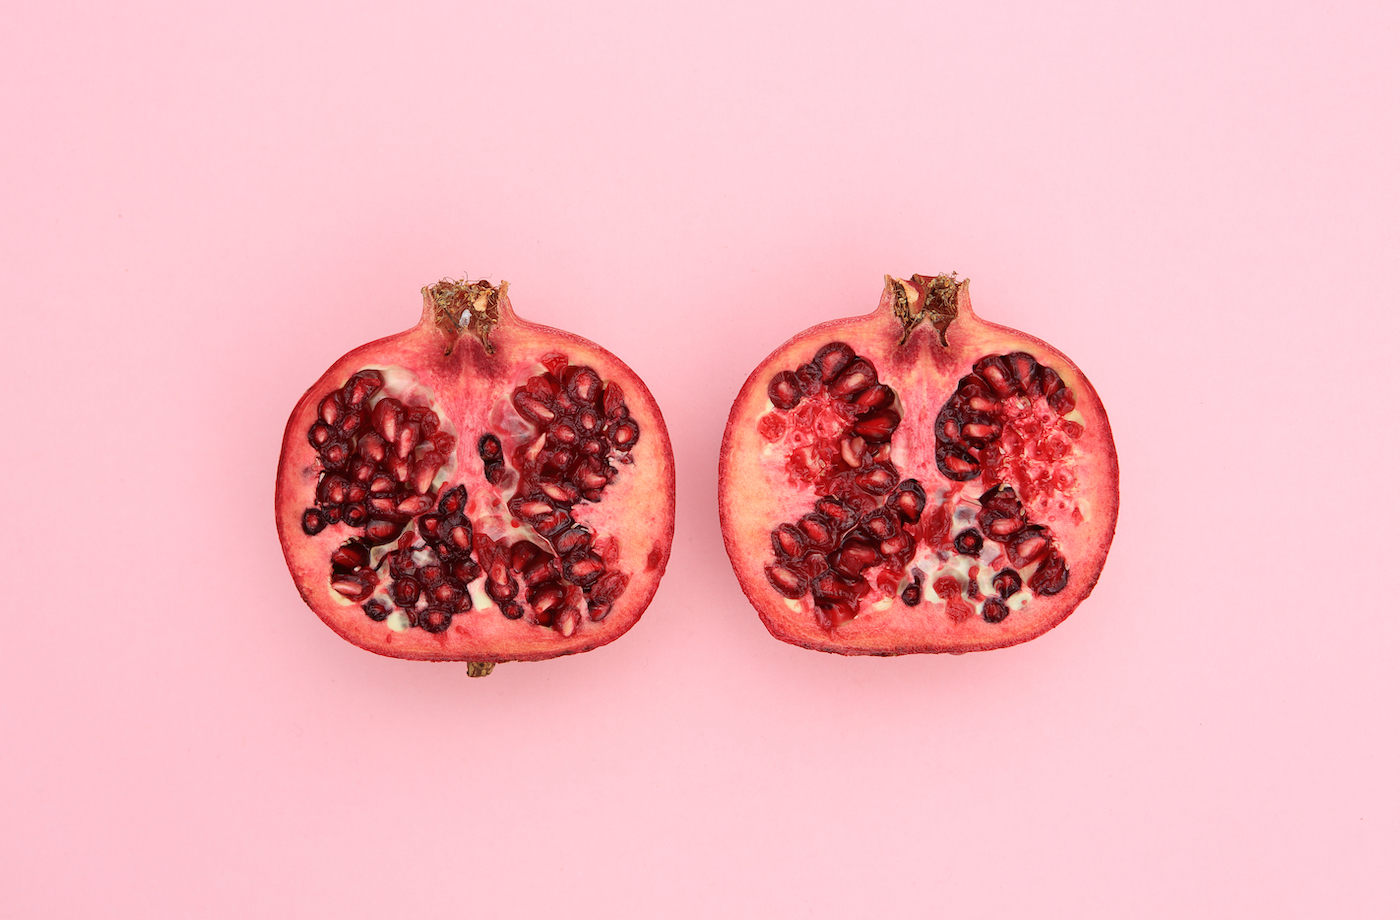 Thumbnail for These 7 pomegranate benefits make it worthy of a spot in your fruit bowl